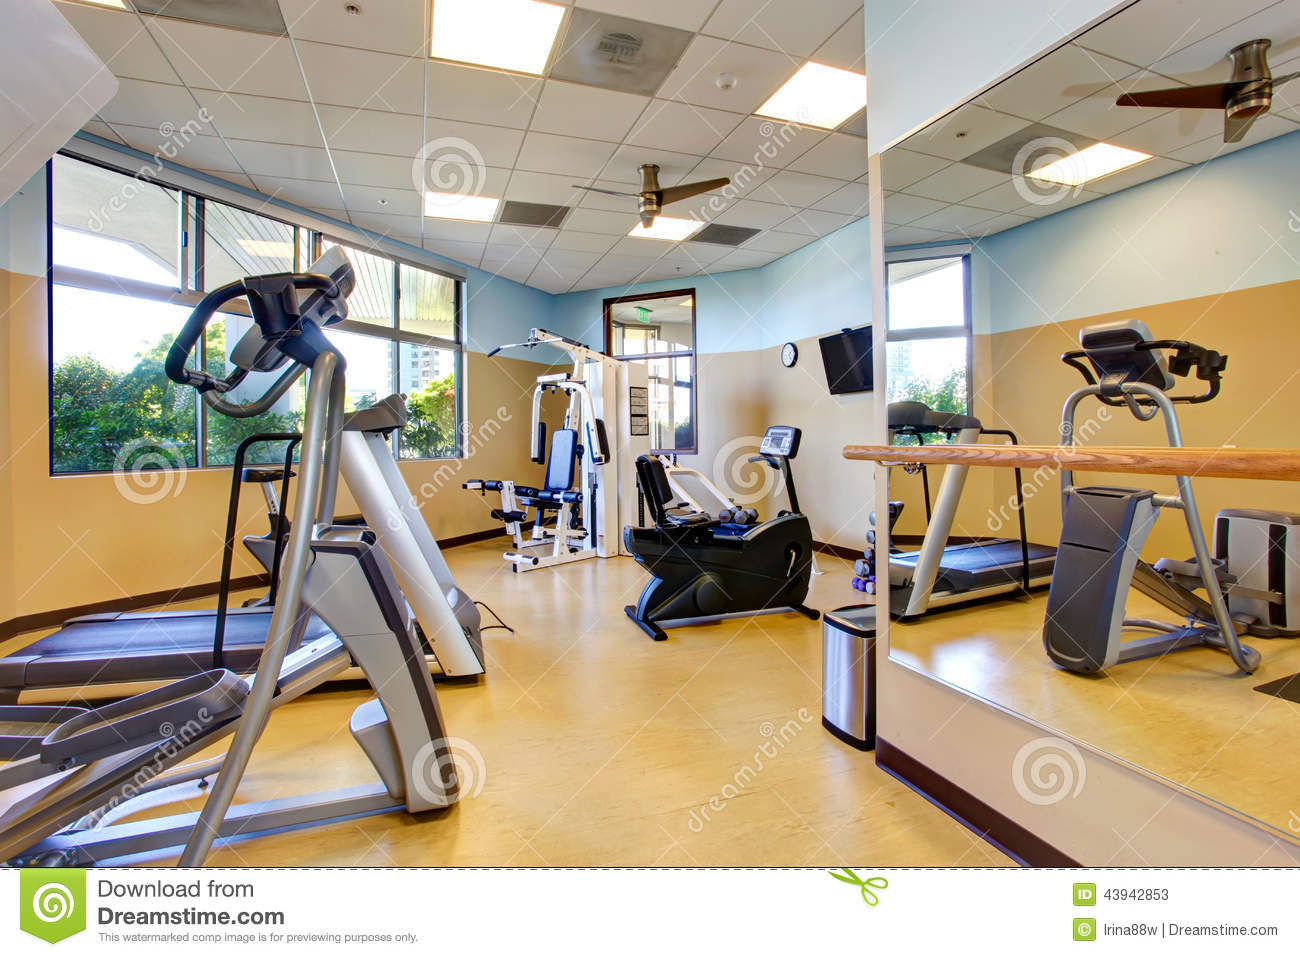 Bright gym room in residential building stock photo